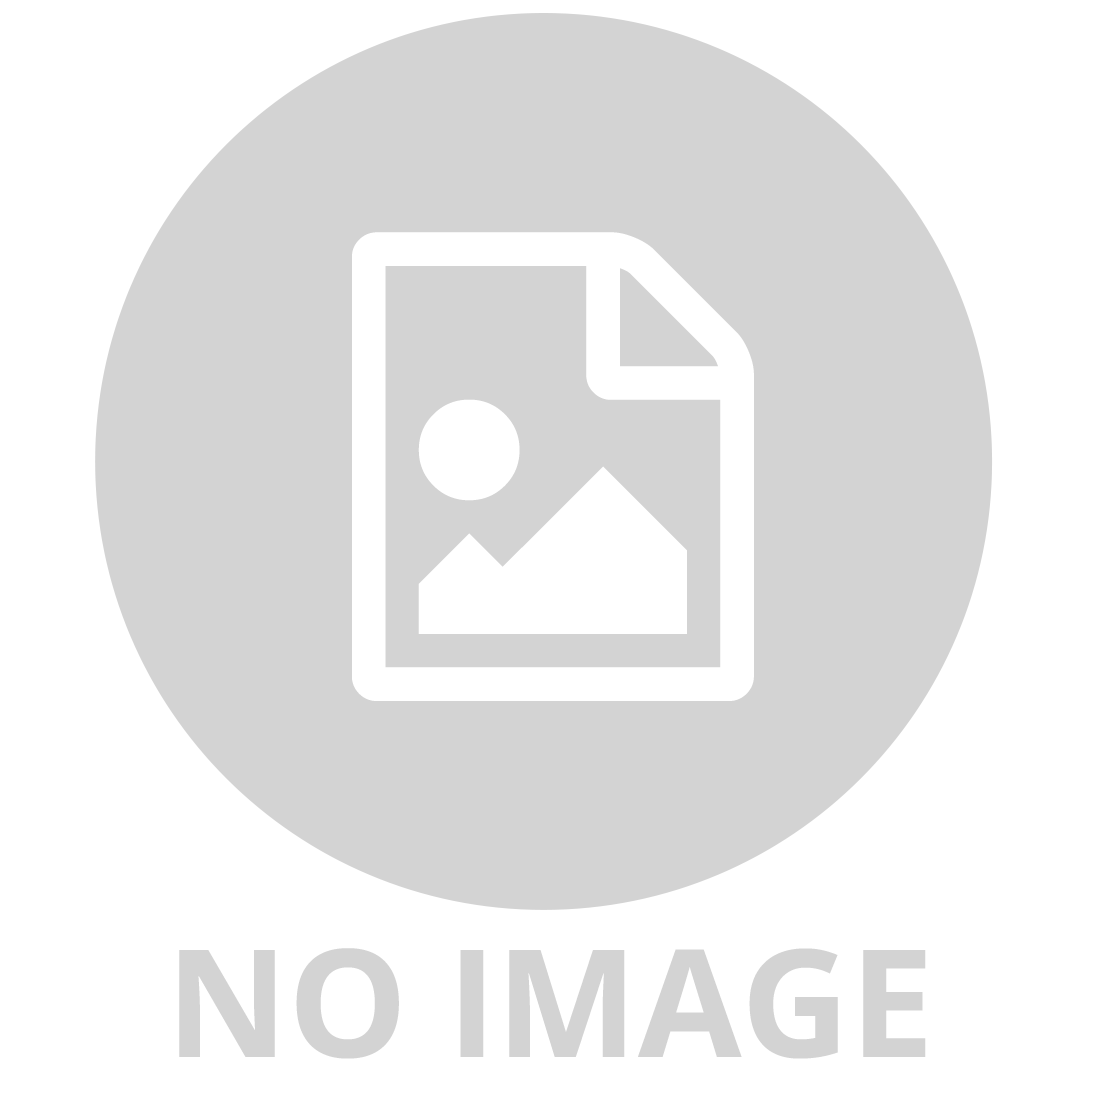 ROBO ALIVE ROBOTIC DINOSAUR WITH SLIME T-REX